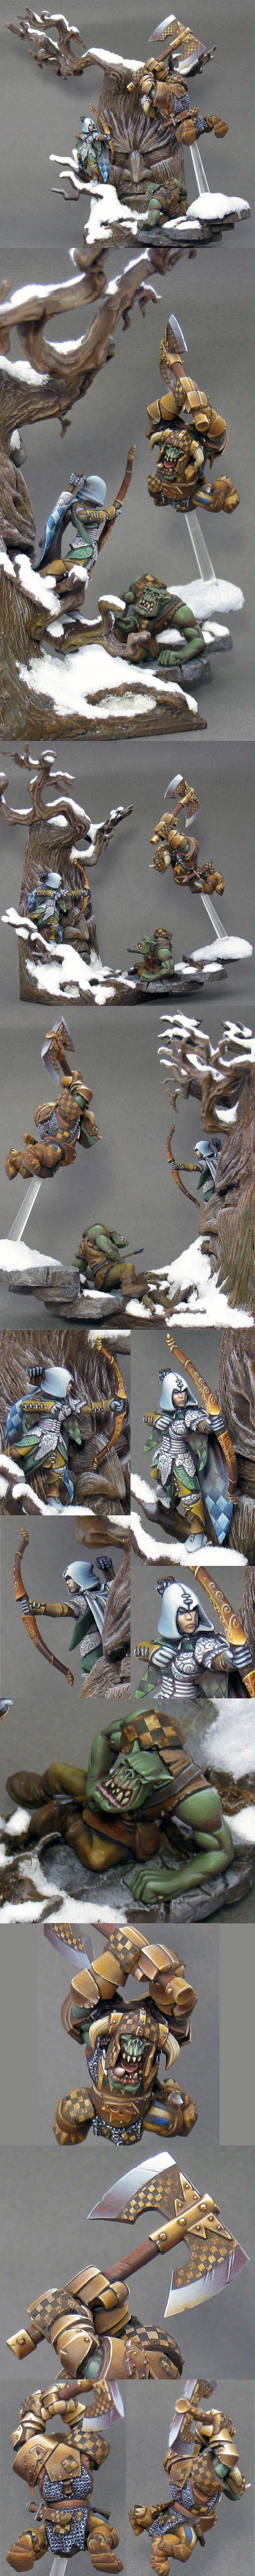 Arrows, Axe, Combat, Diorama, Elves, Fight, Hacking, Non-Metallic Metal, Orcs, Snow, Warhammer Fantasy, Woods